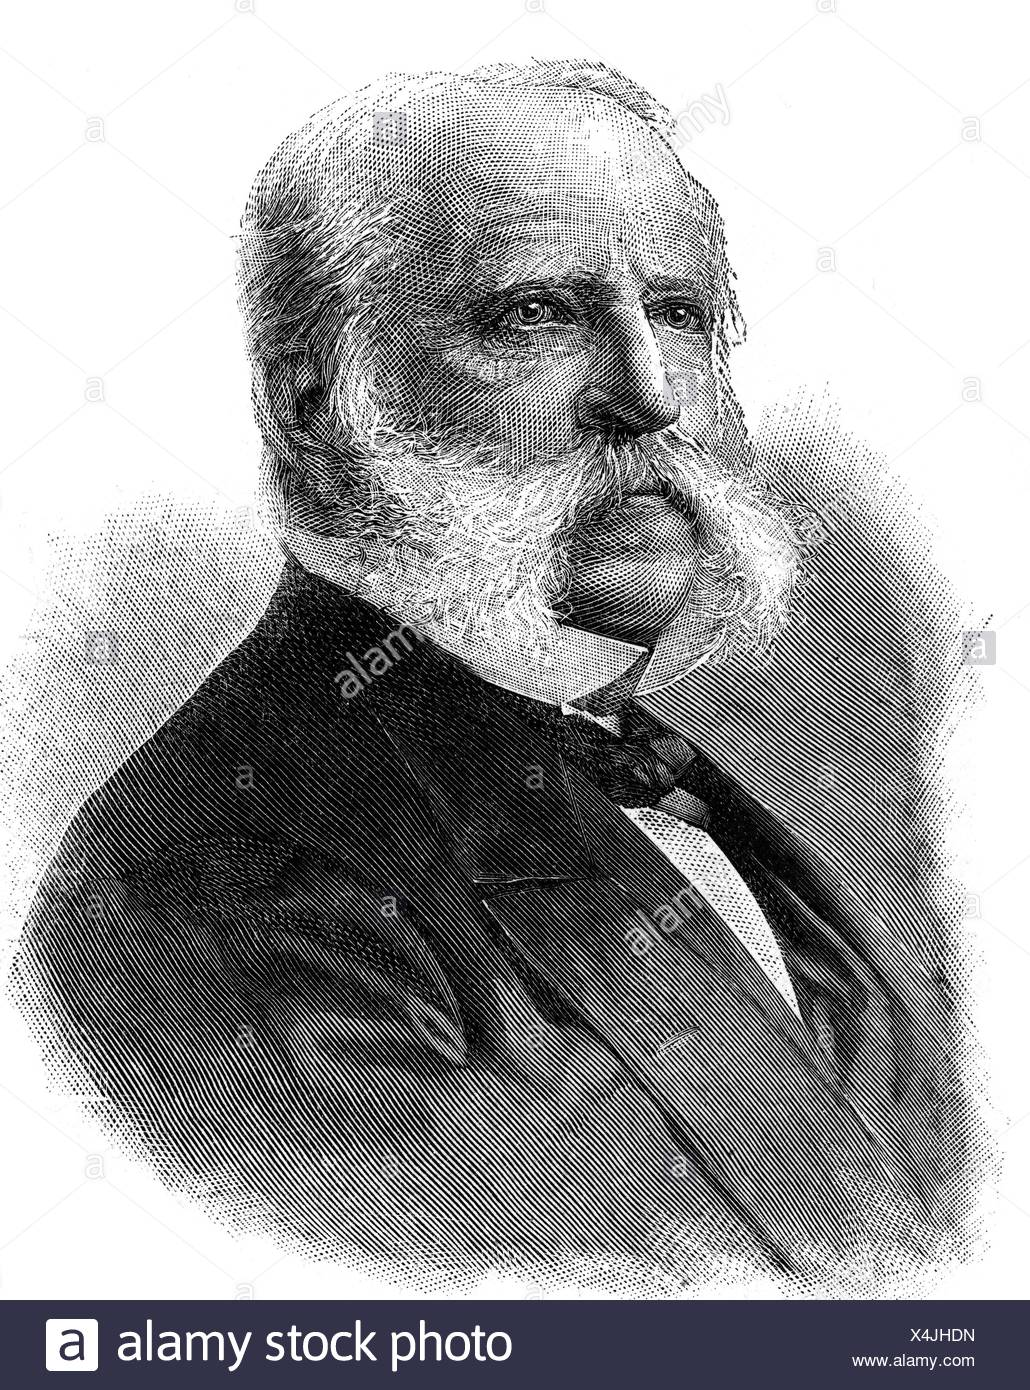 Ottendorfer, Oswald, 26.2.1826 - 15.12.1900, US American journalist of Moravian origin, portrait, wood engraving after photo, late 19th century, Additional-Rights-Clearances-NA - Stock Image